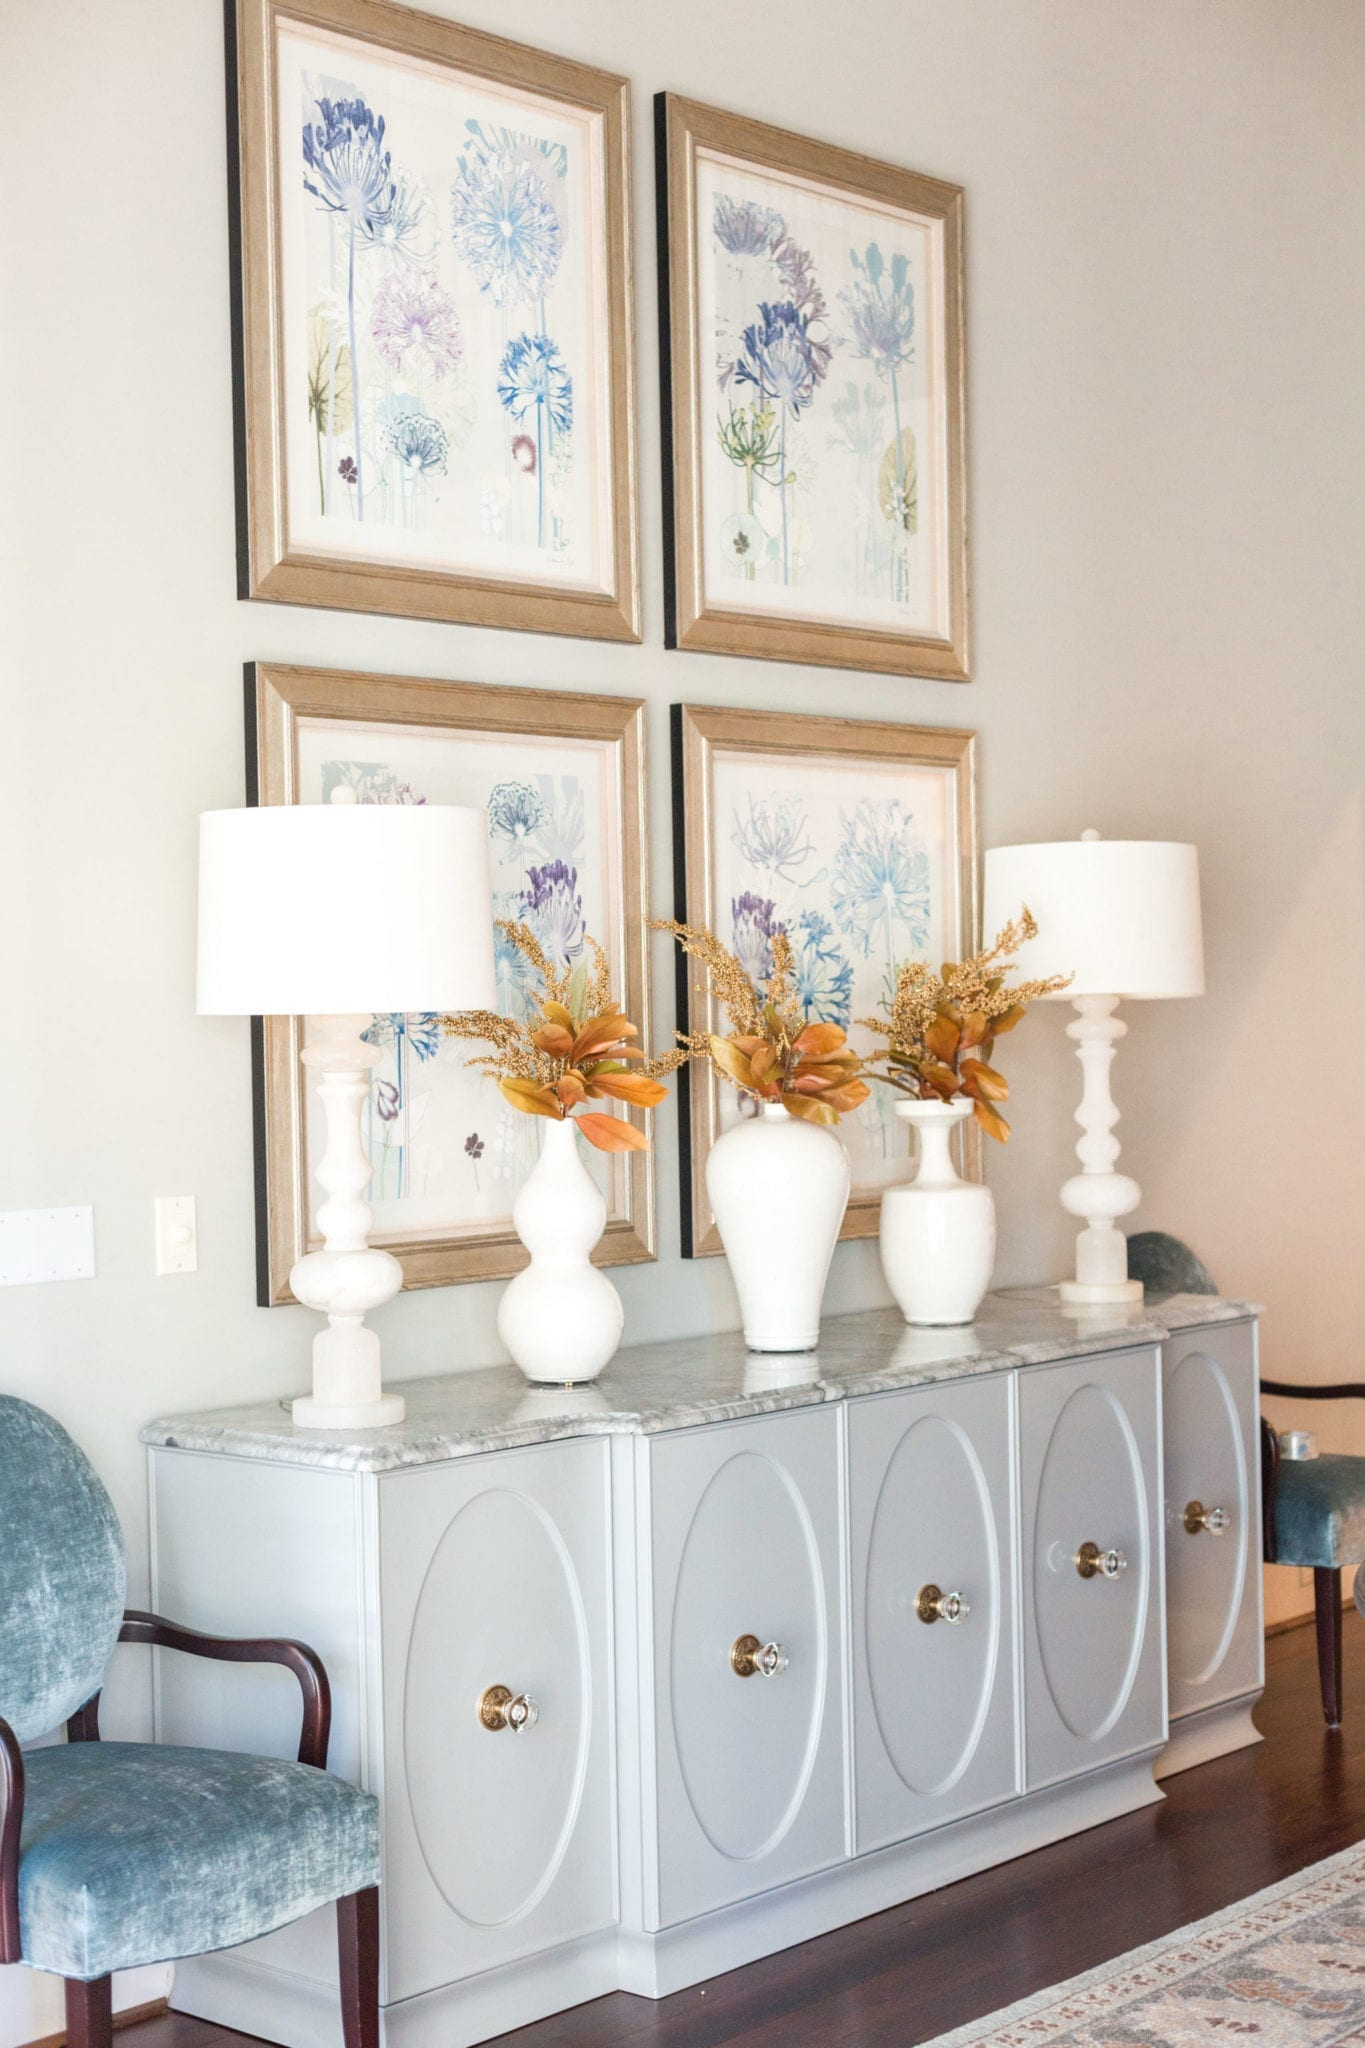 Decorating for Fall with Modern Look. Dining Room Thanksgiving decoration ideas.